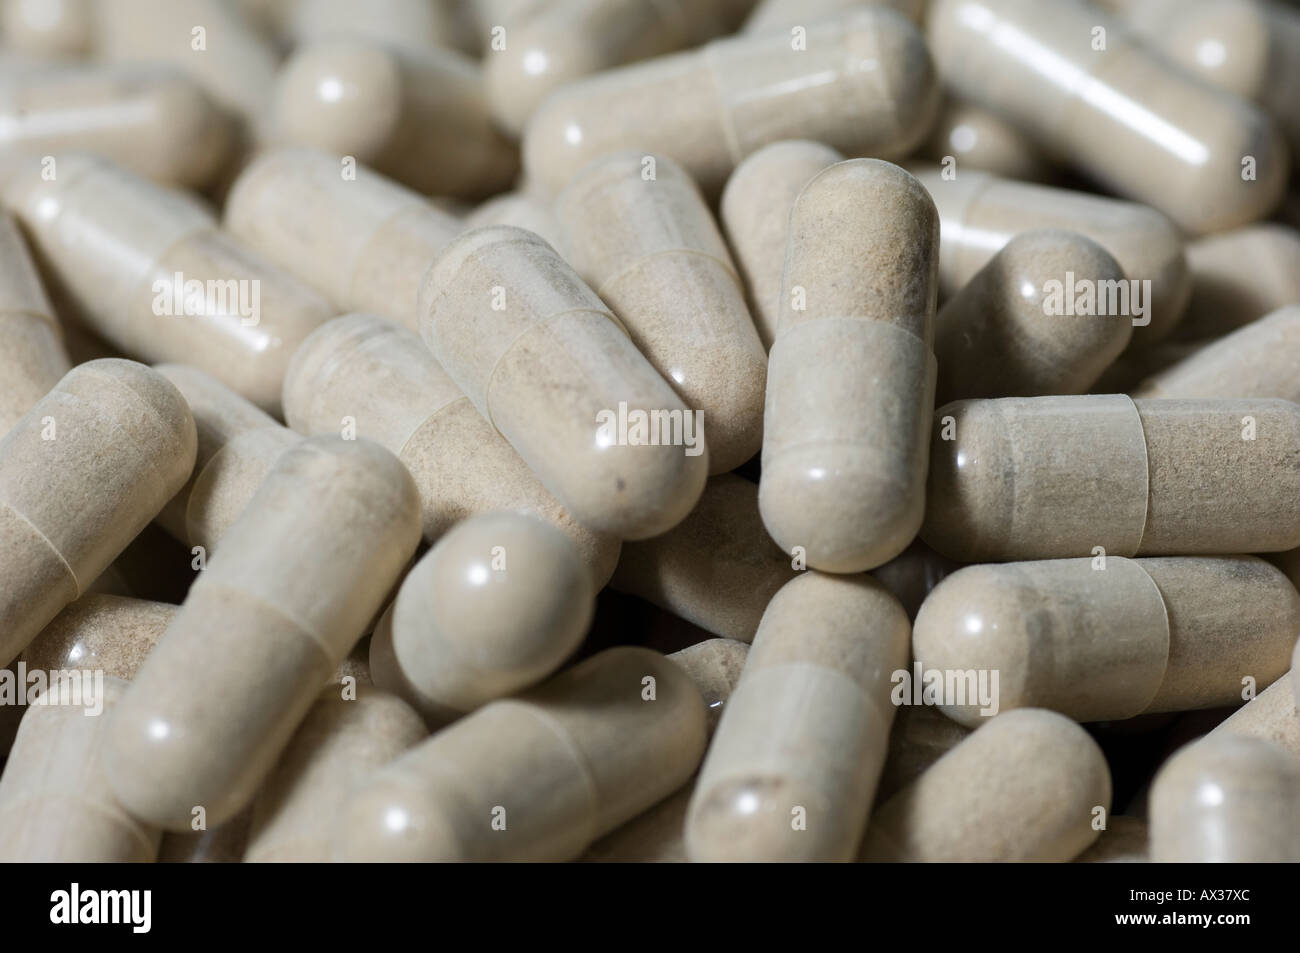 Close up of white pills Photo Stock